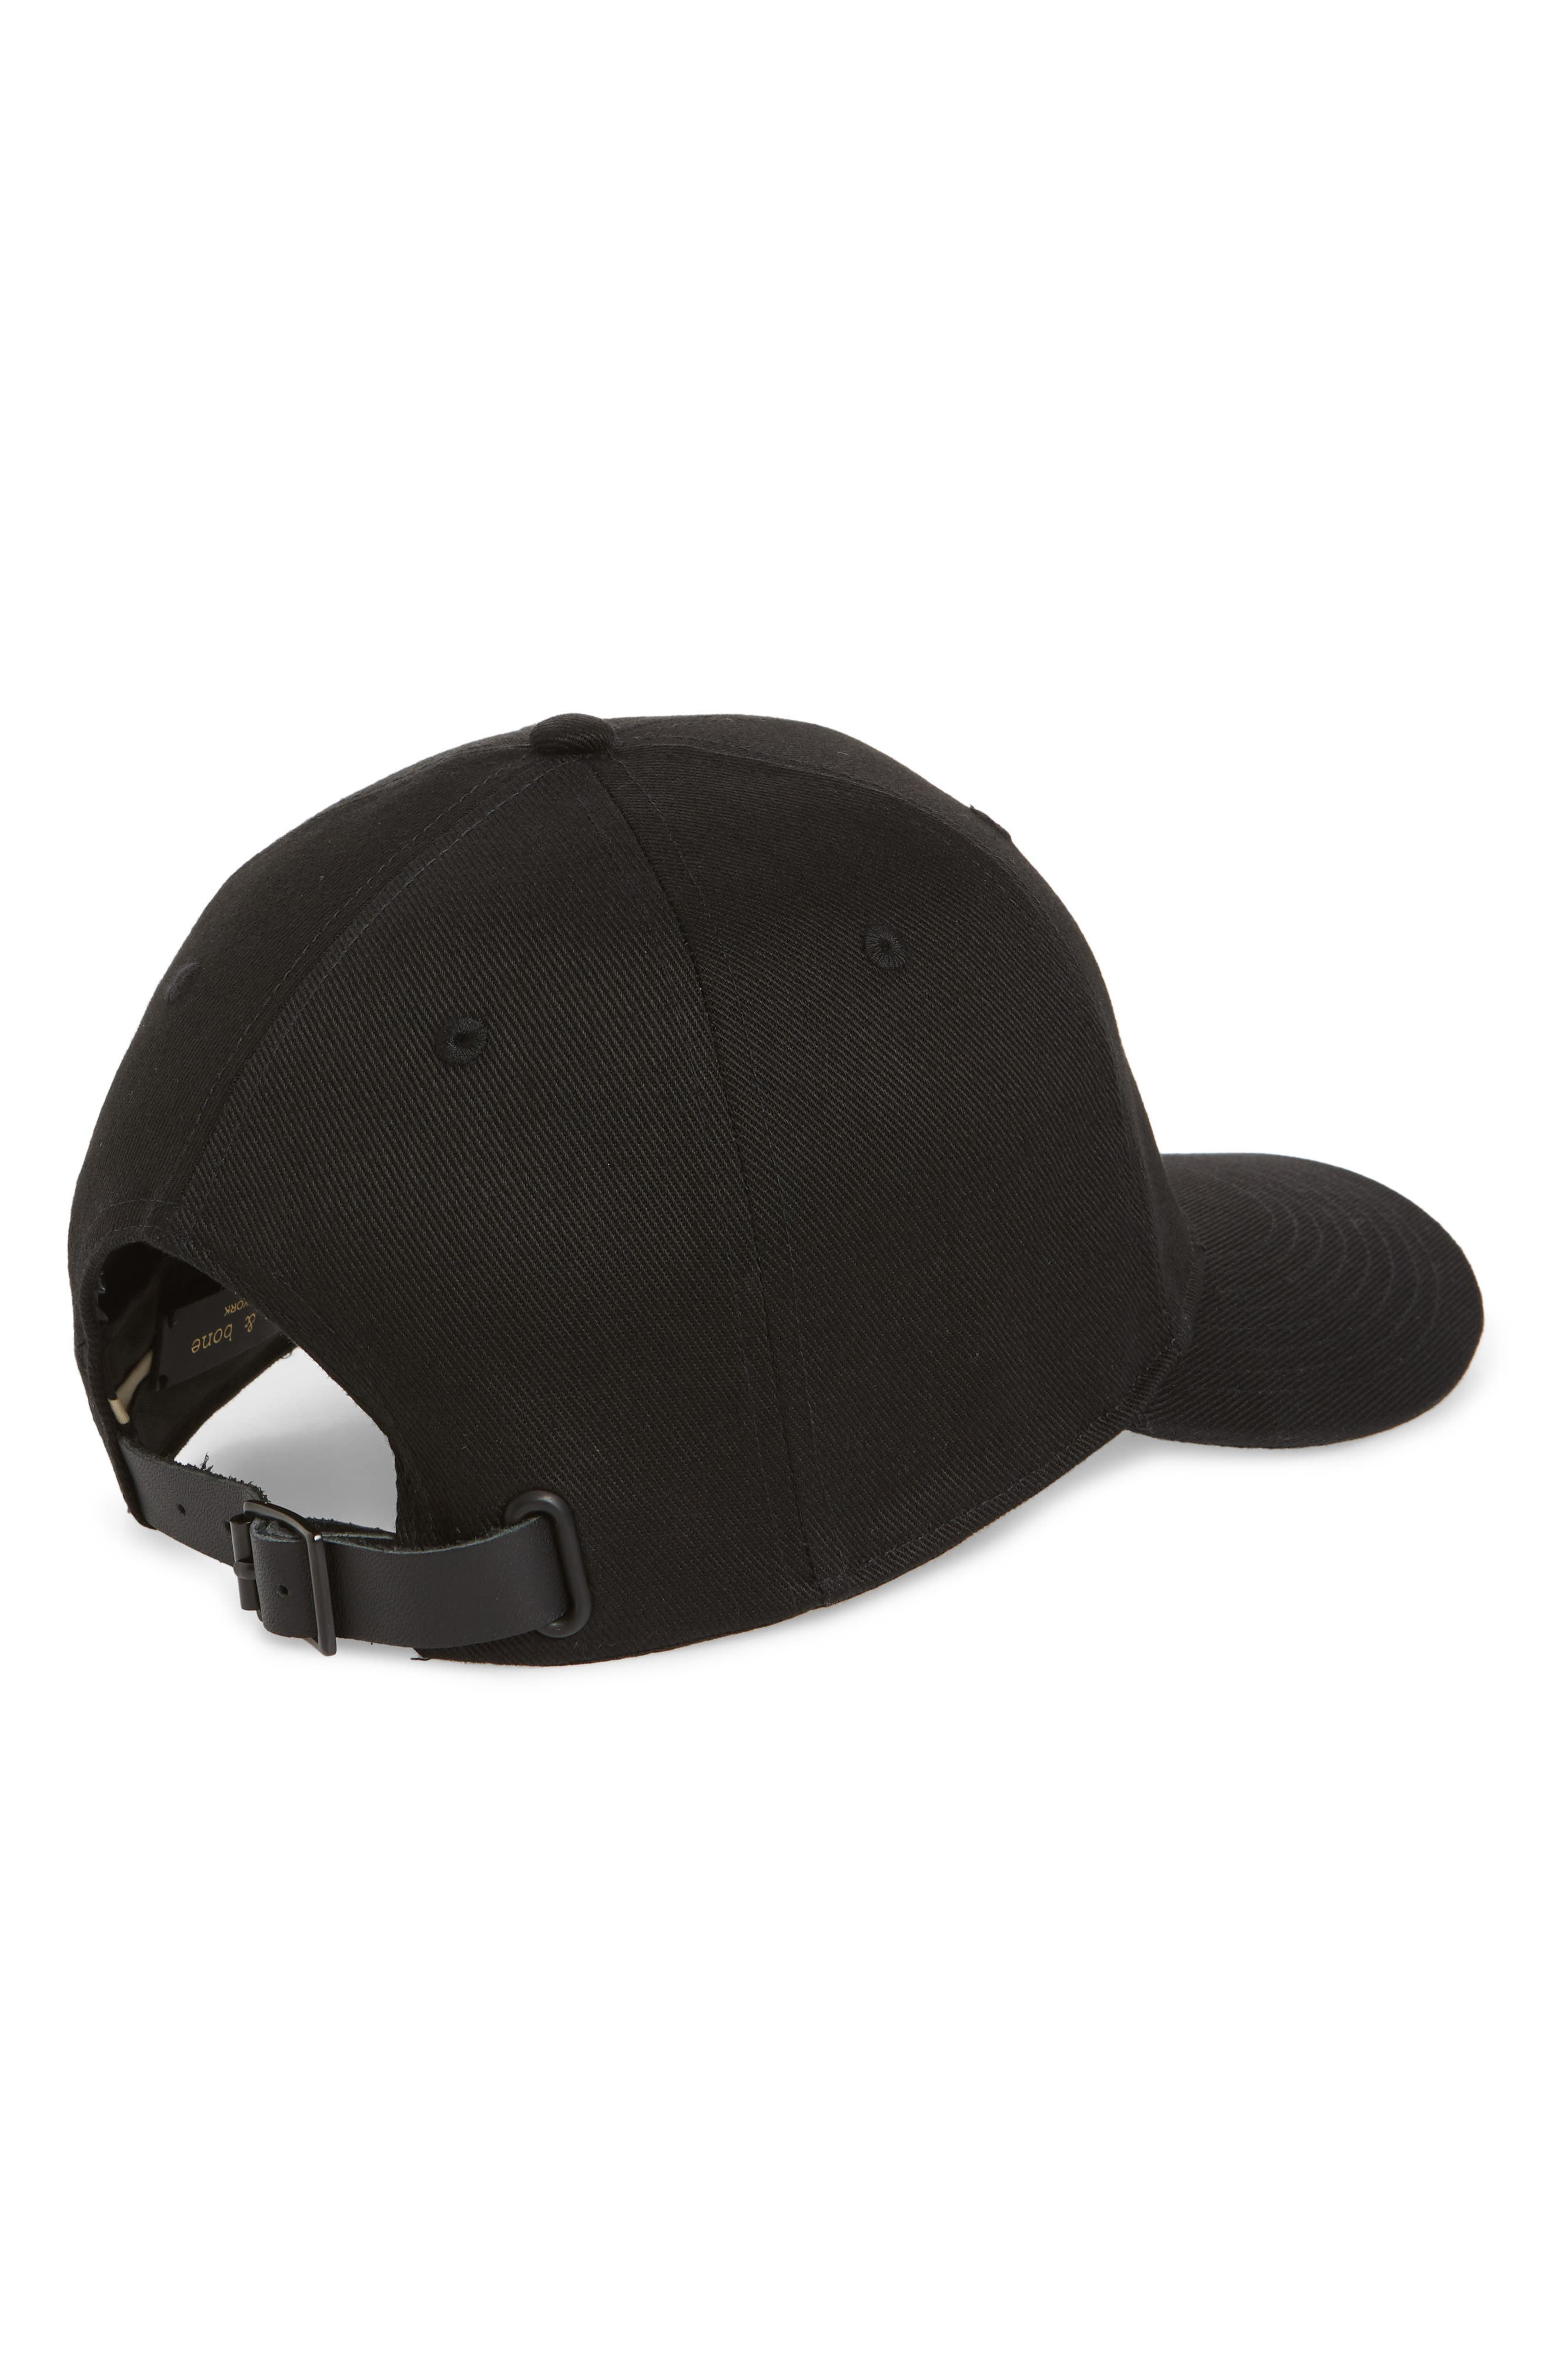 Dylan Ball Cap,                             Alternate thumbnail 2, color,                             Black Twill